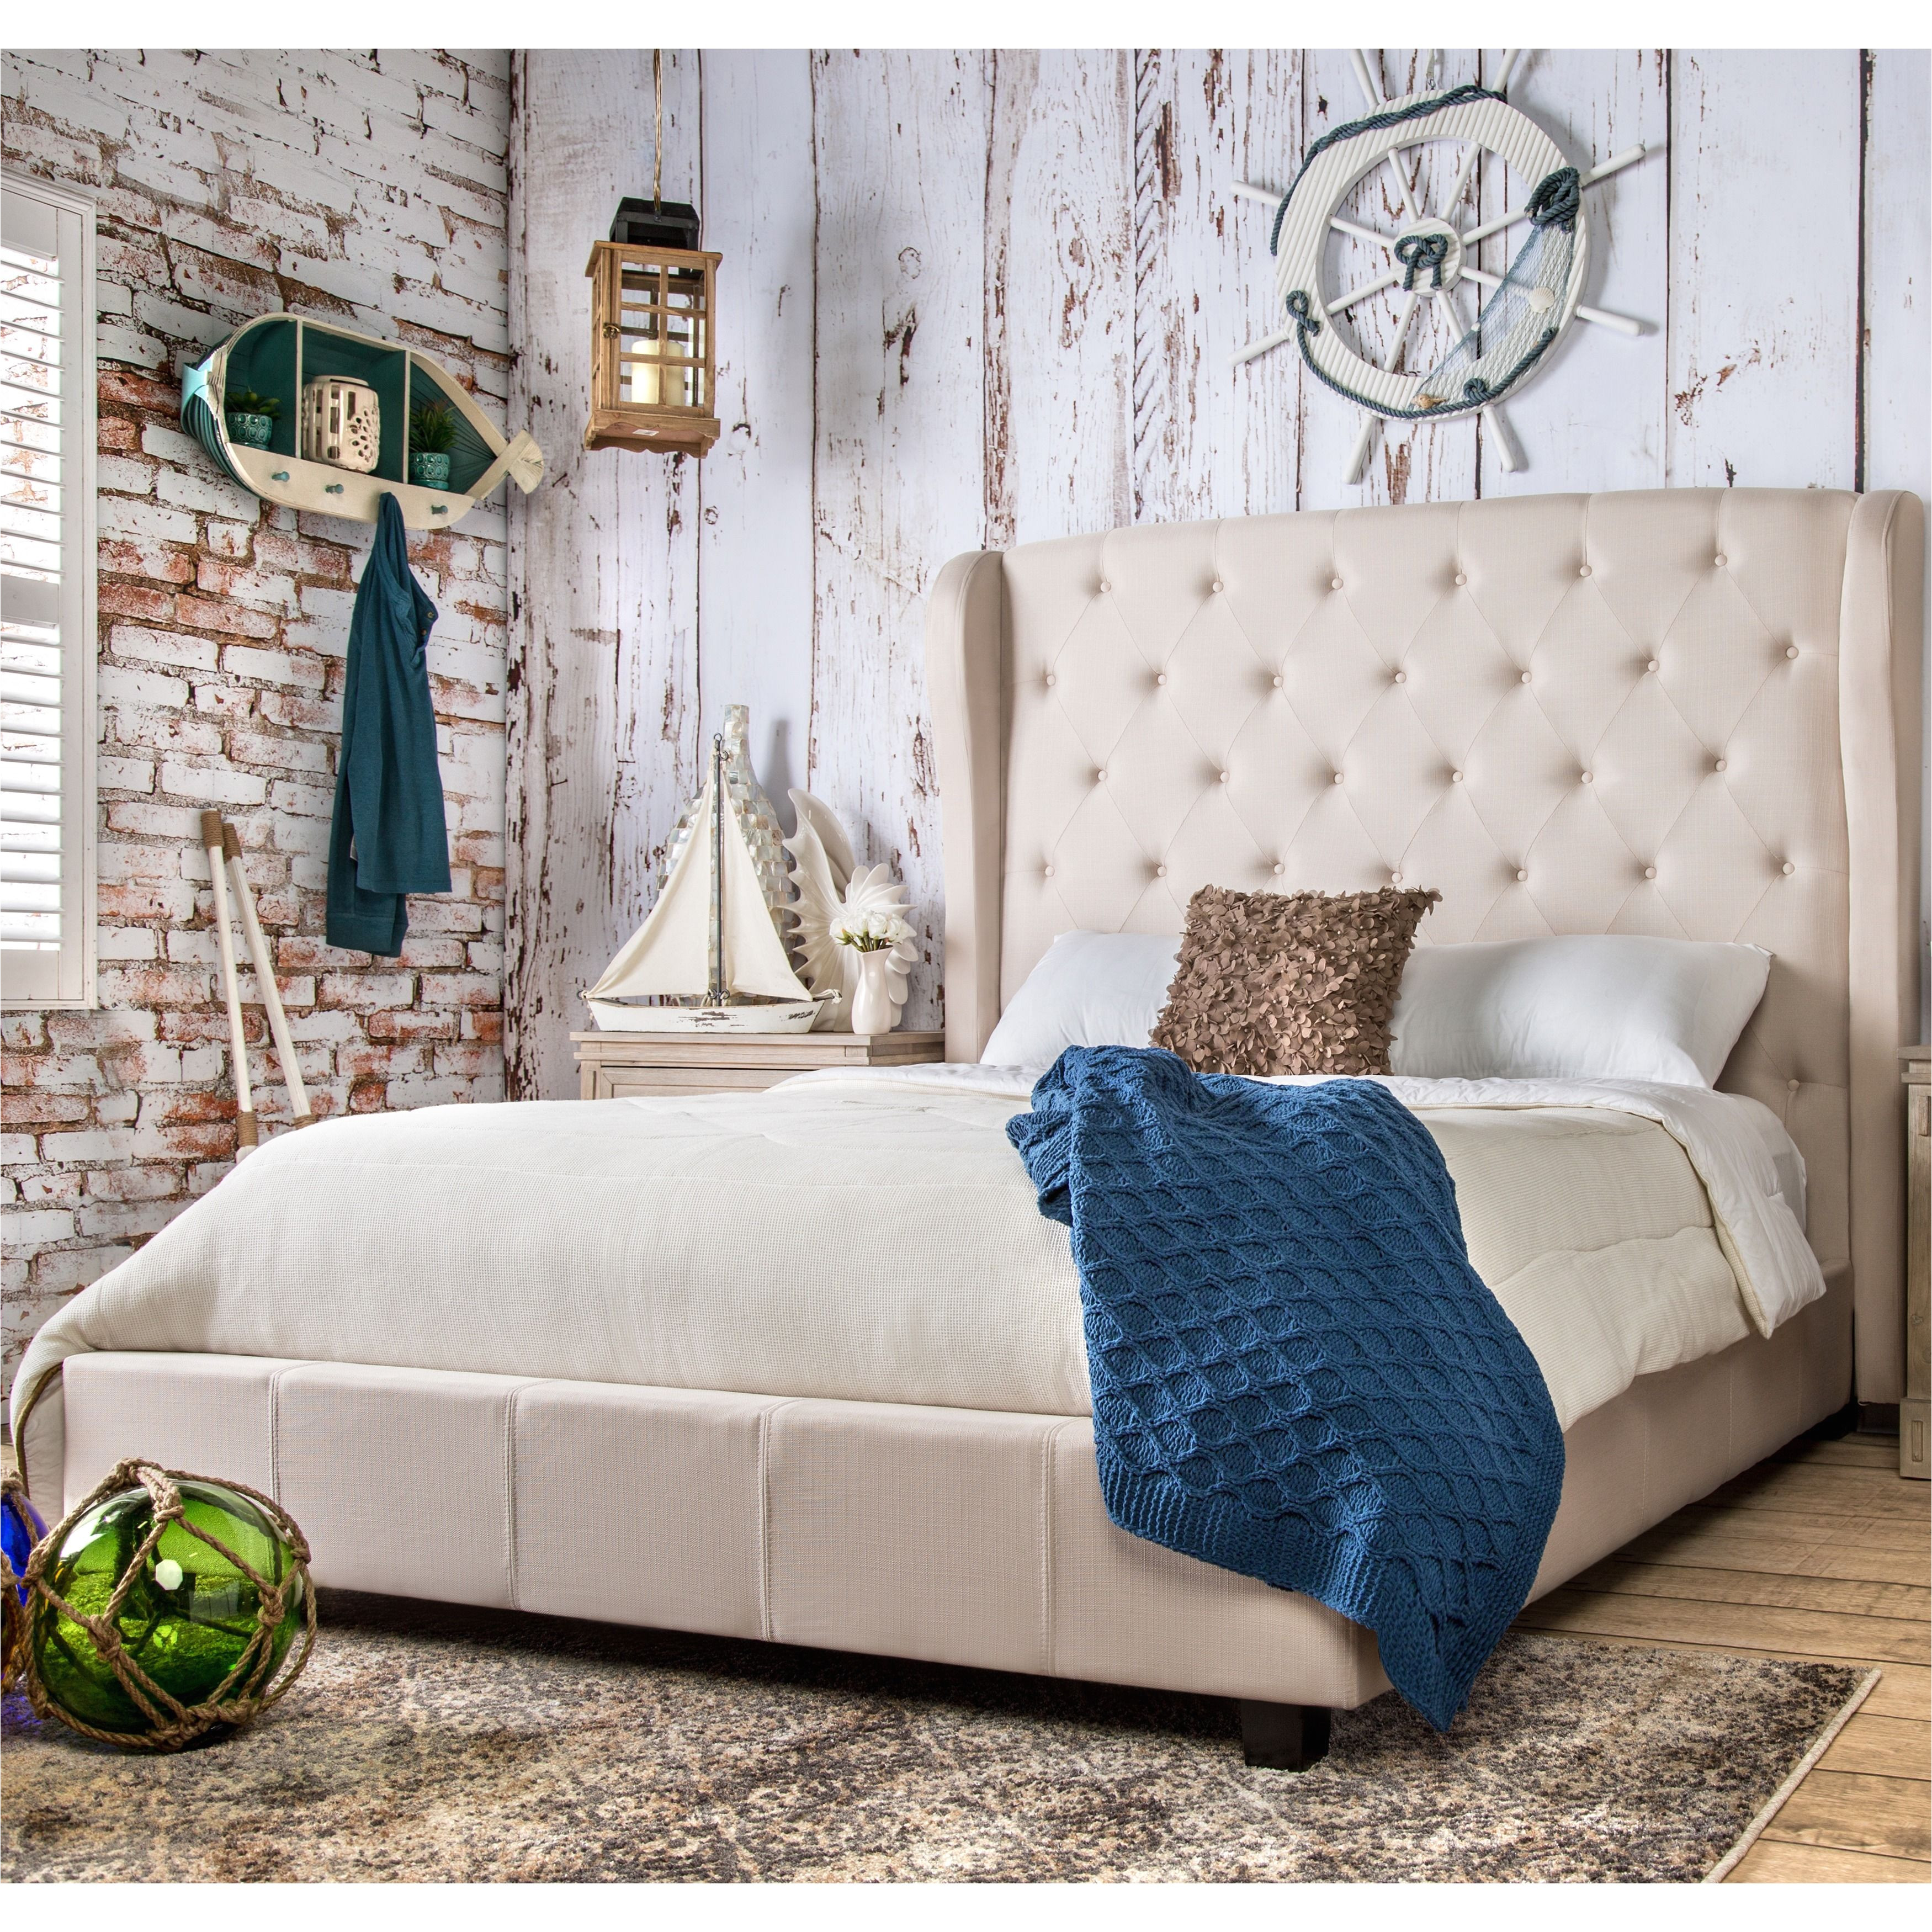 furniture of america draviosa button tufted padded flax wingback platform bed cal king ivory beige off white size california king